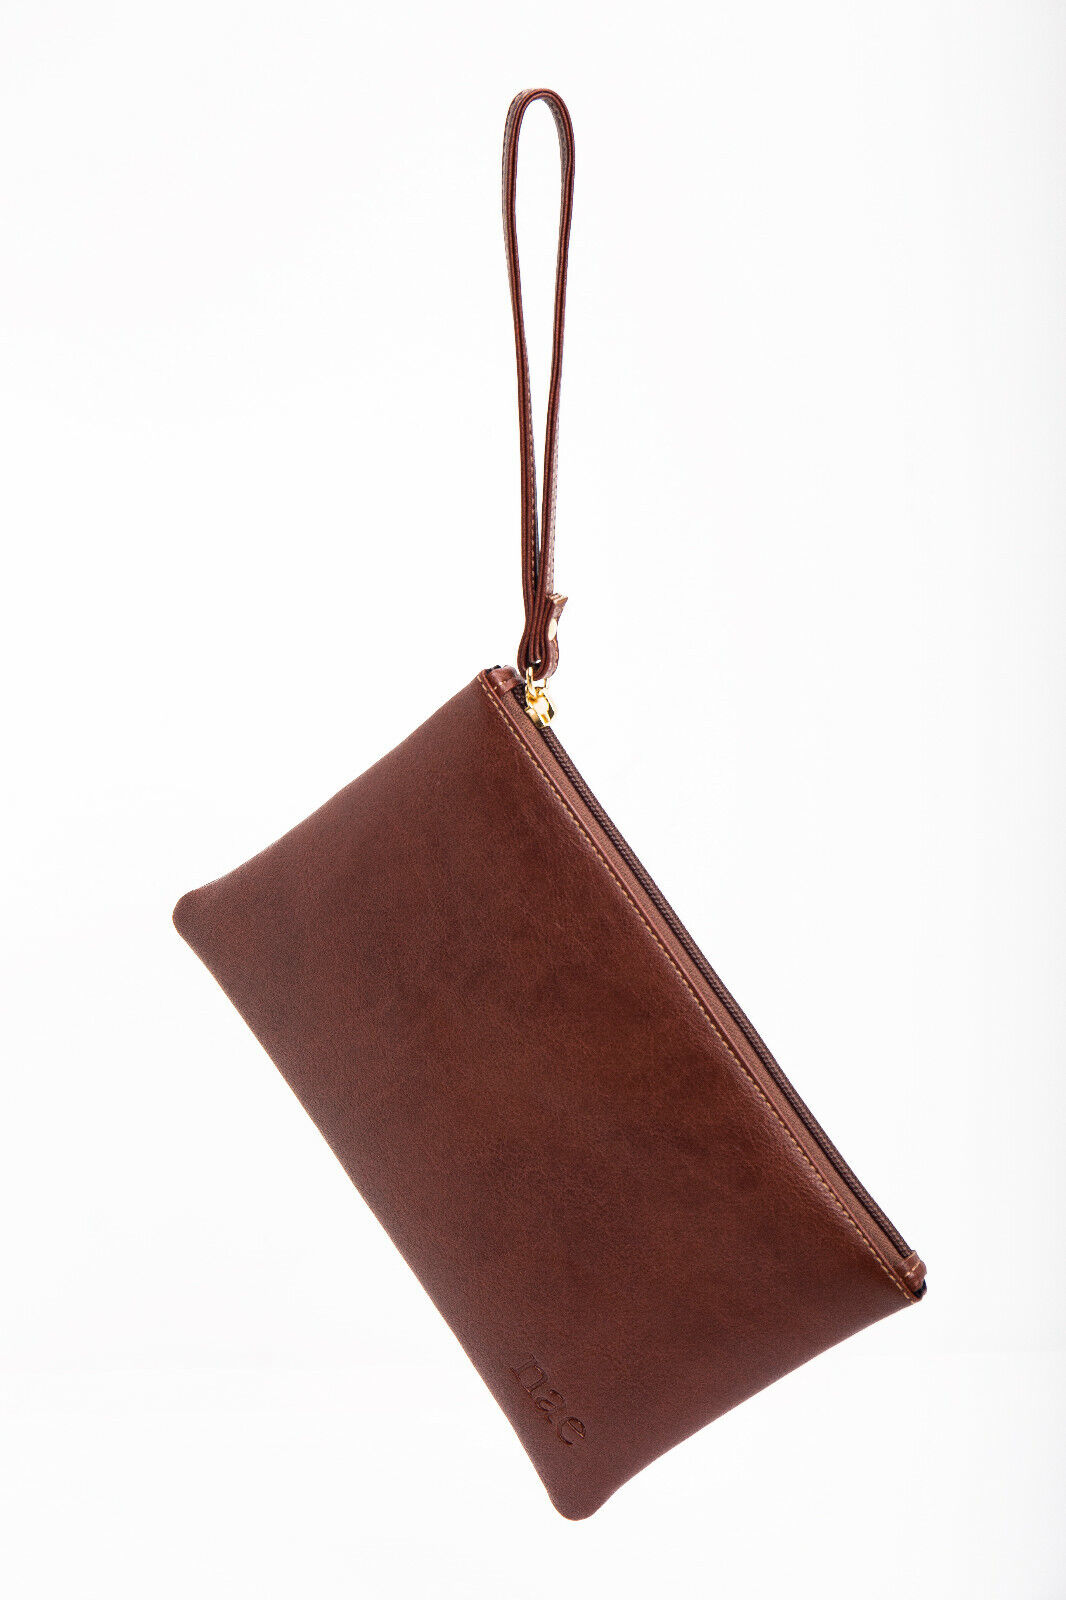 Wristlet Vegan Wallet with Long Zipper Section to Hold Phone Cards Coin...